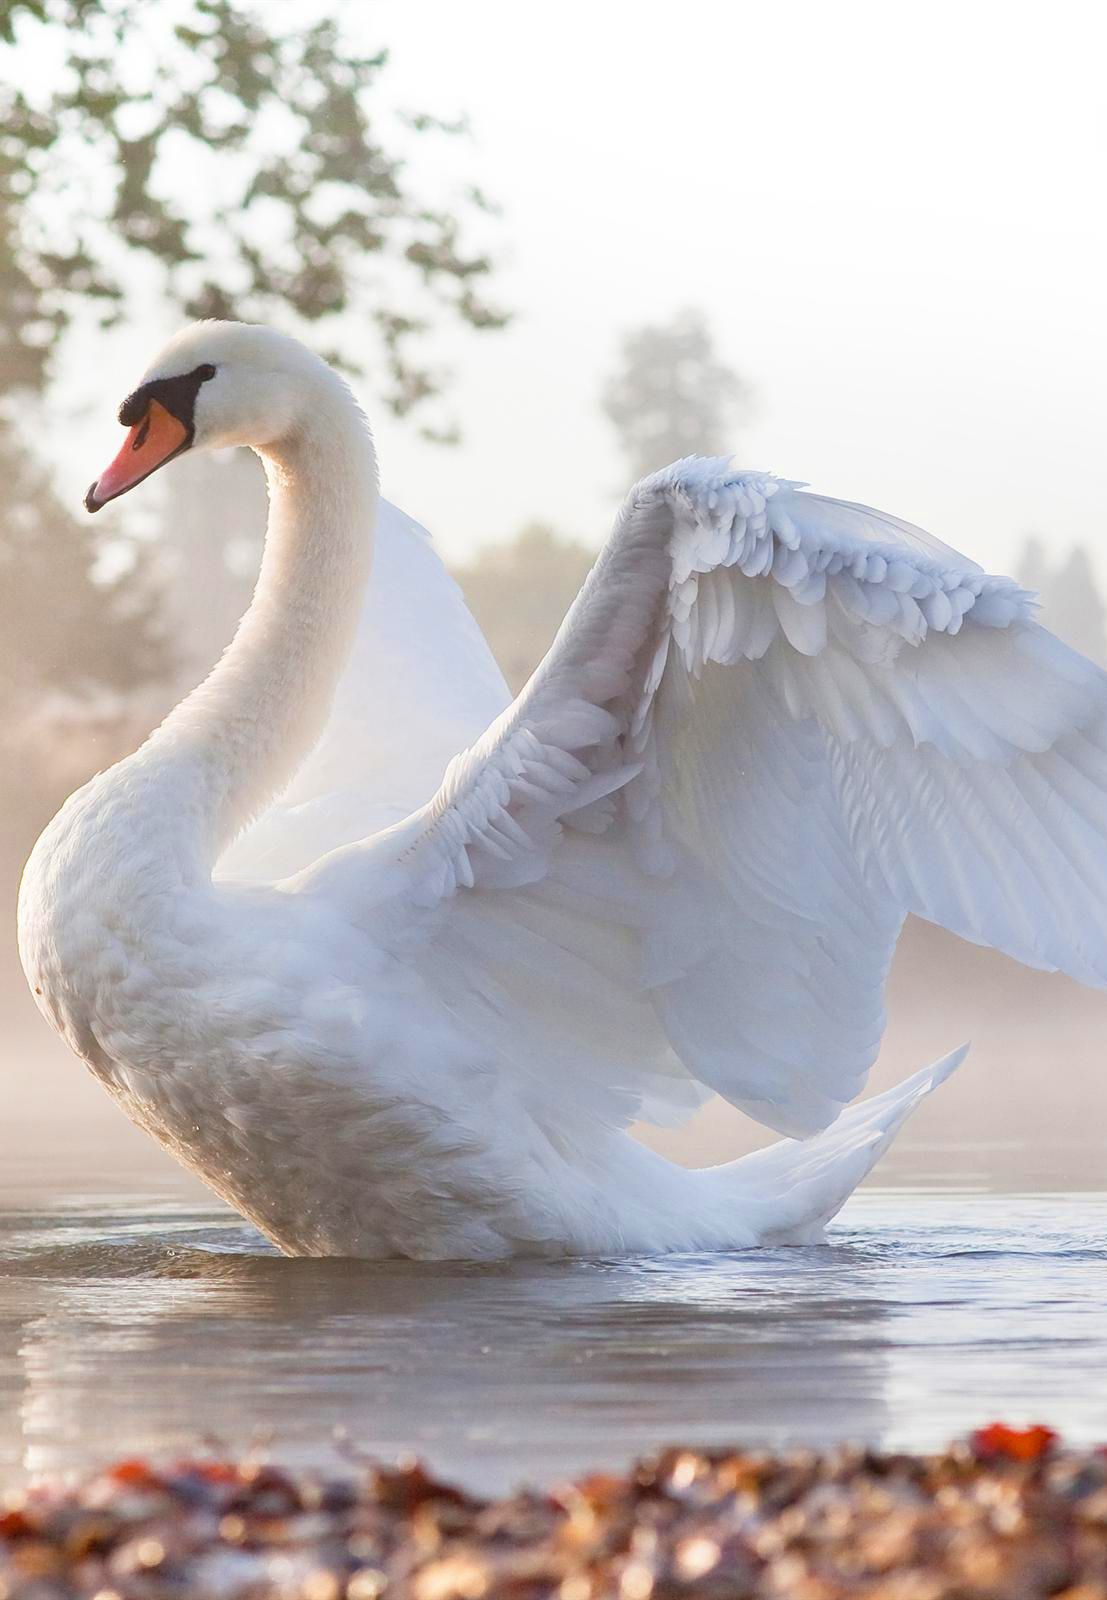 Beautiful Swan Makes Me Think Of The Swans In Springbank Park In Ontario Swimming Through The Willows Along The Wat Beautiful Birds Animals Beautiful Animals